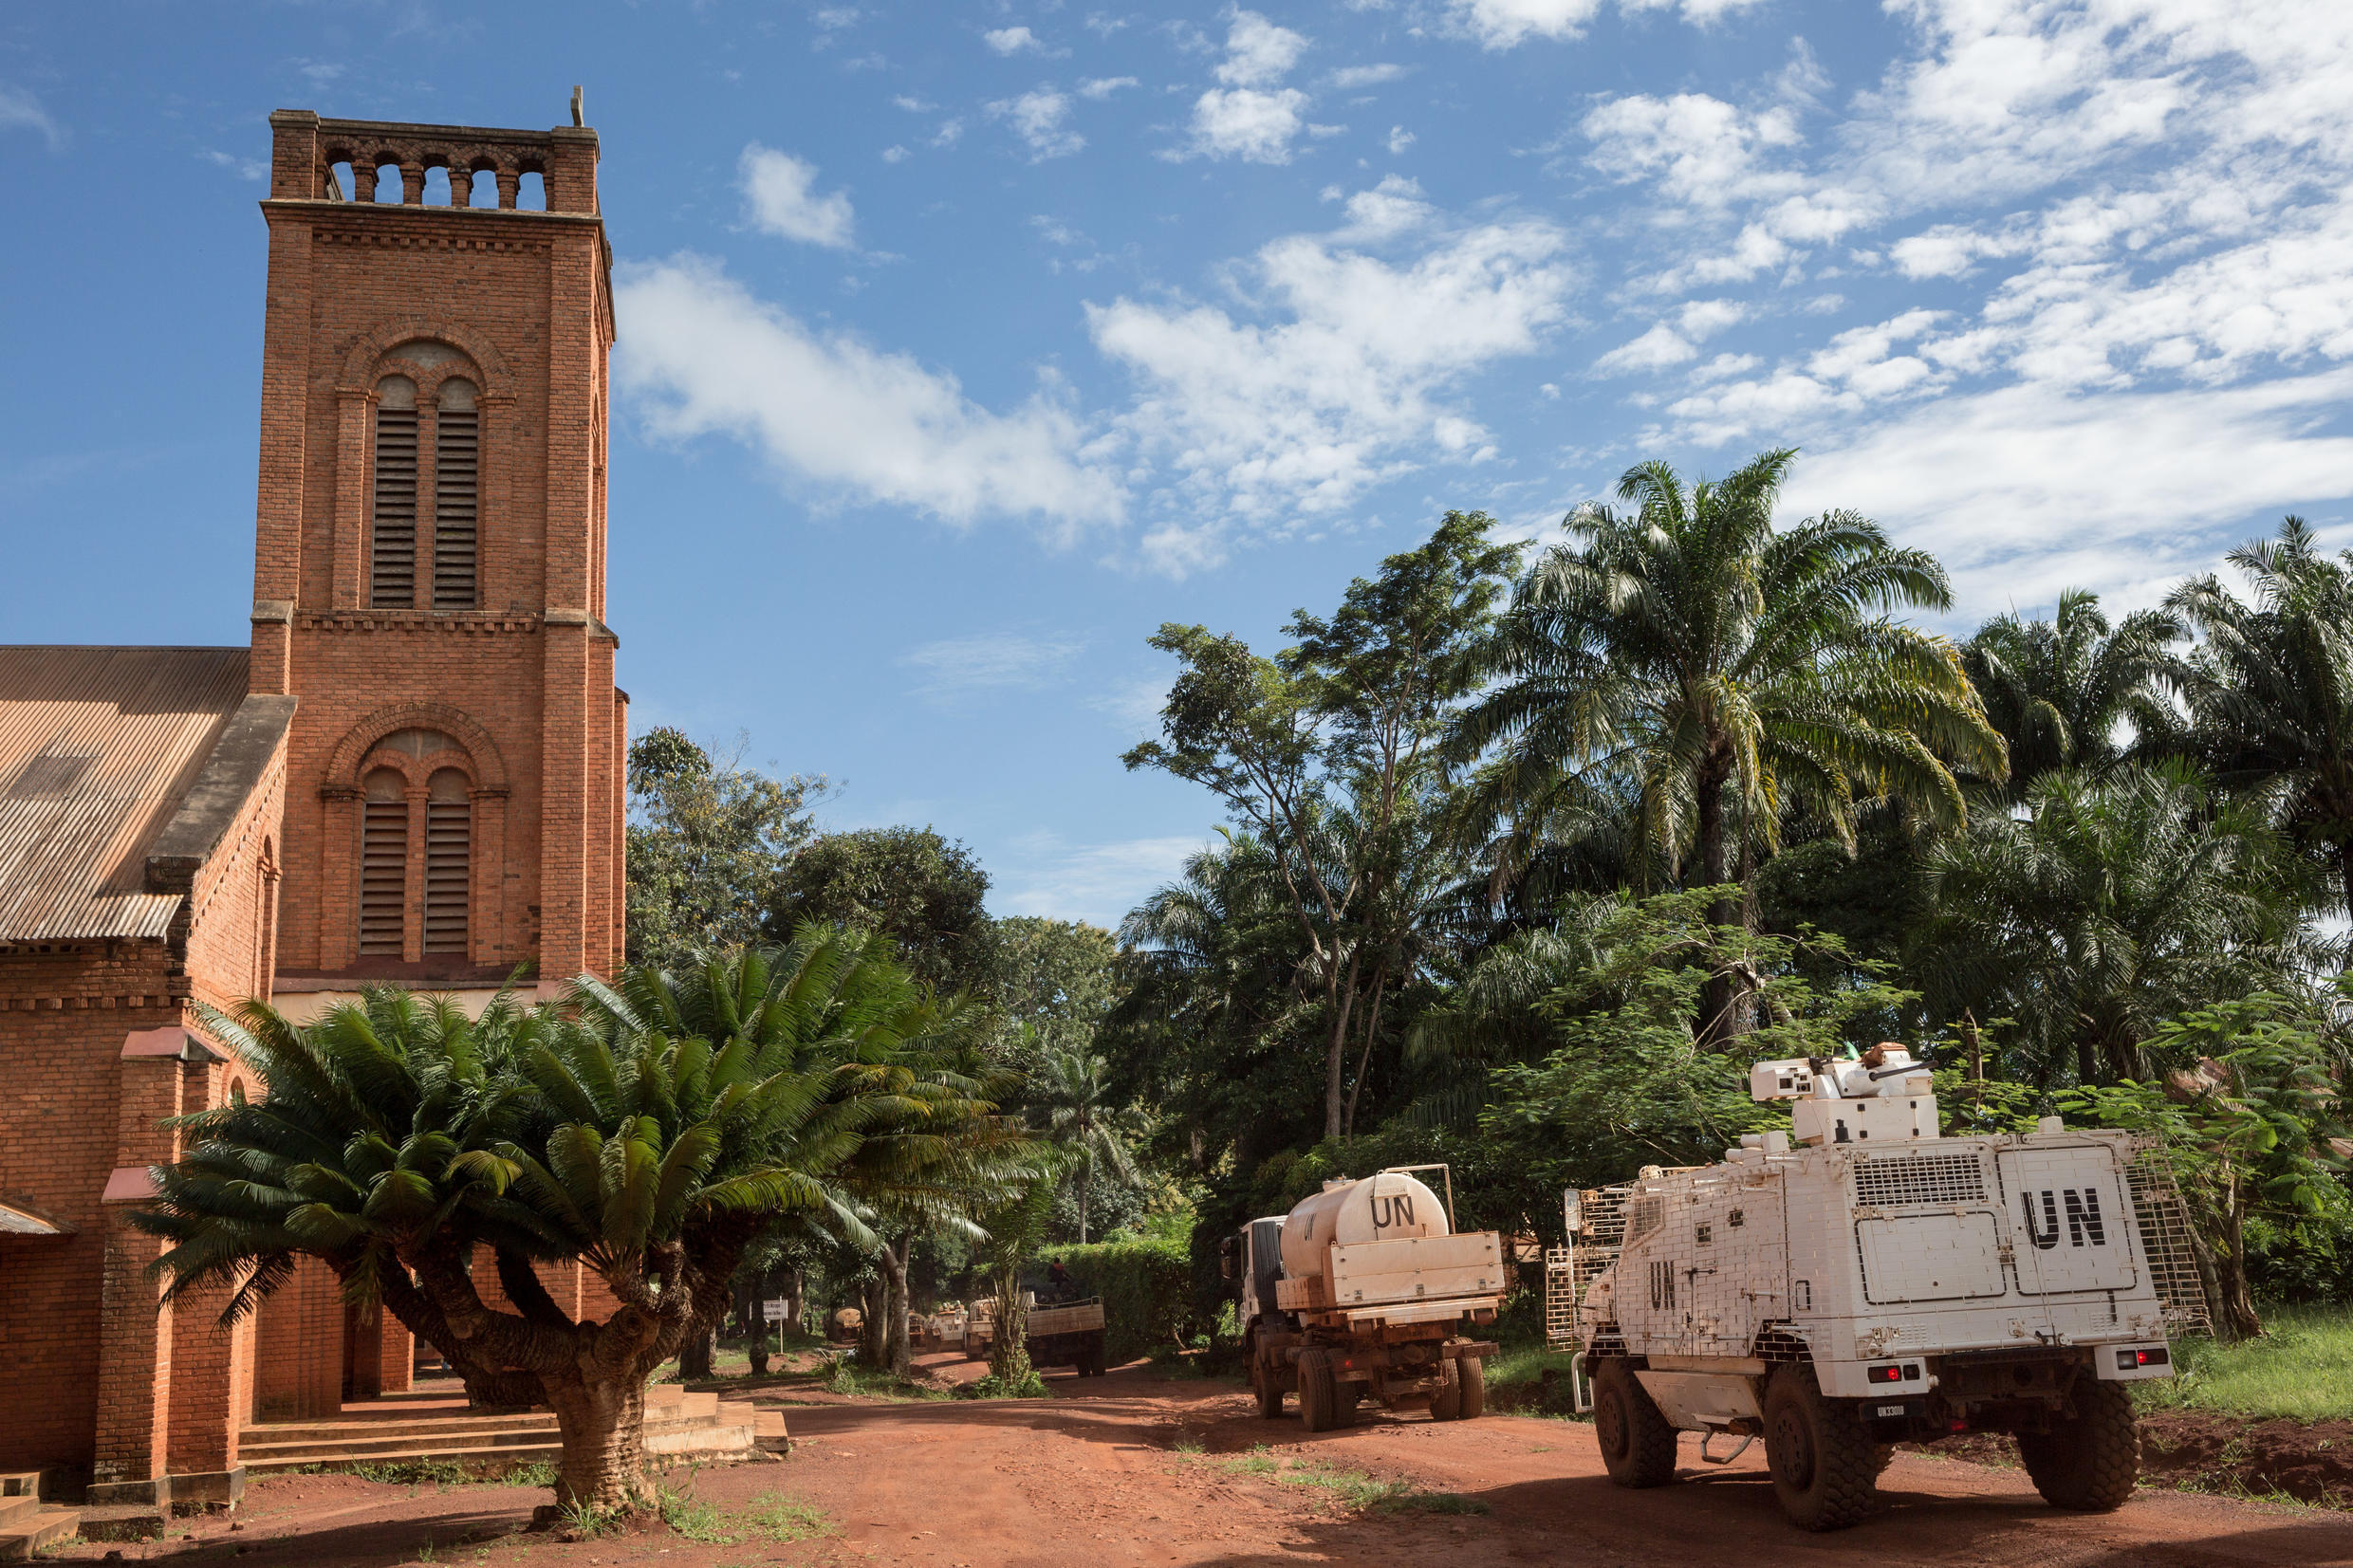 The UN's MINUSCA mission has a base in the Central African Republic city of Bangassou